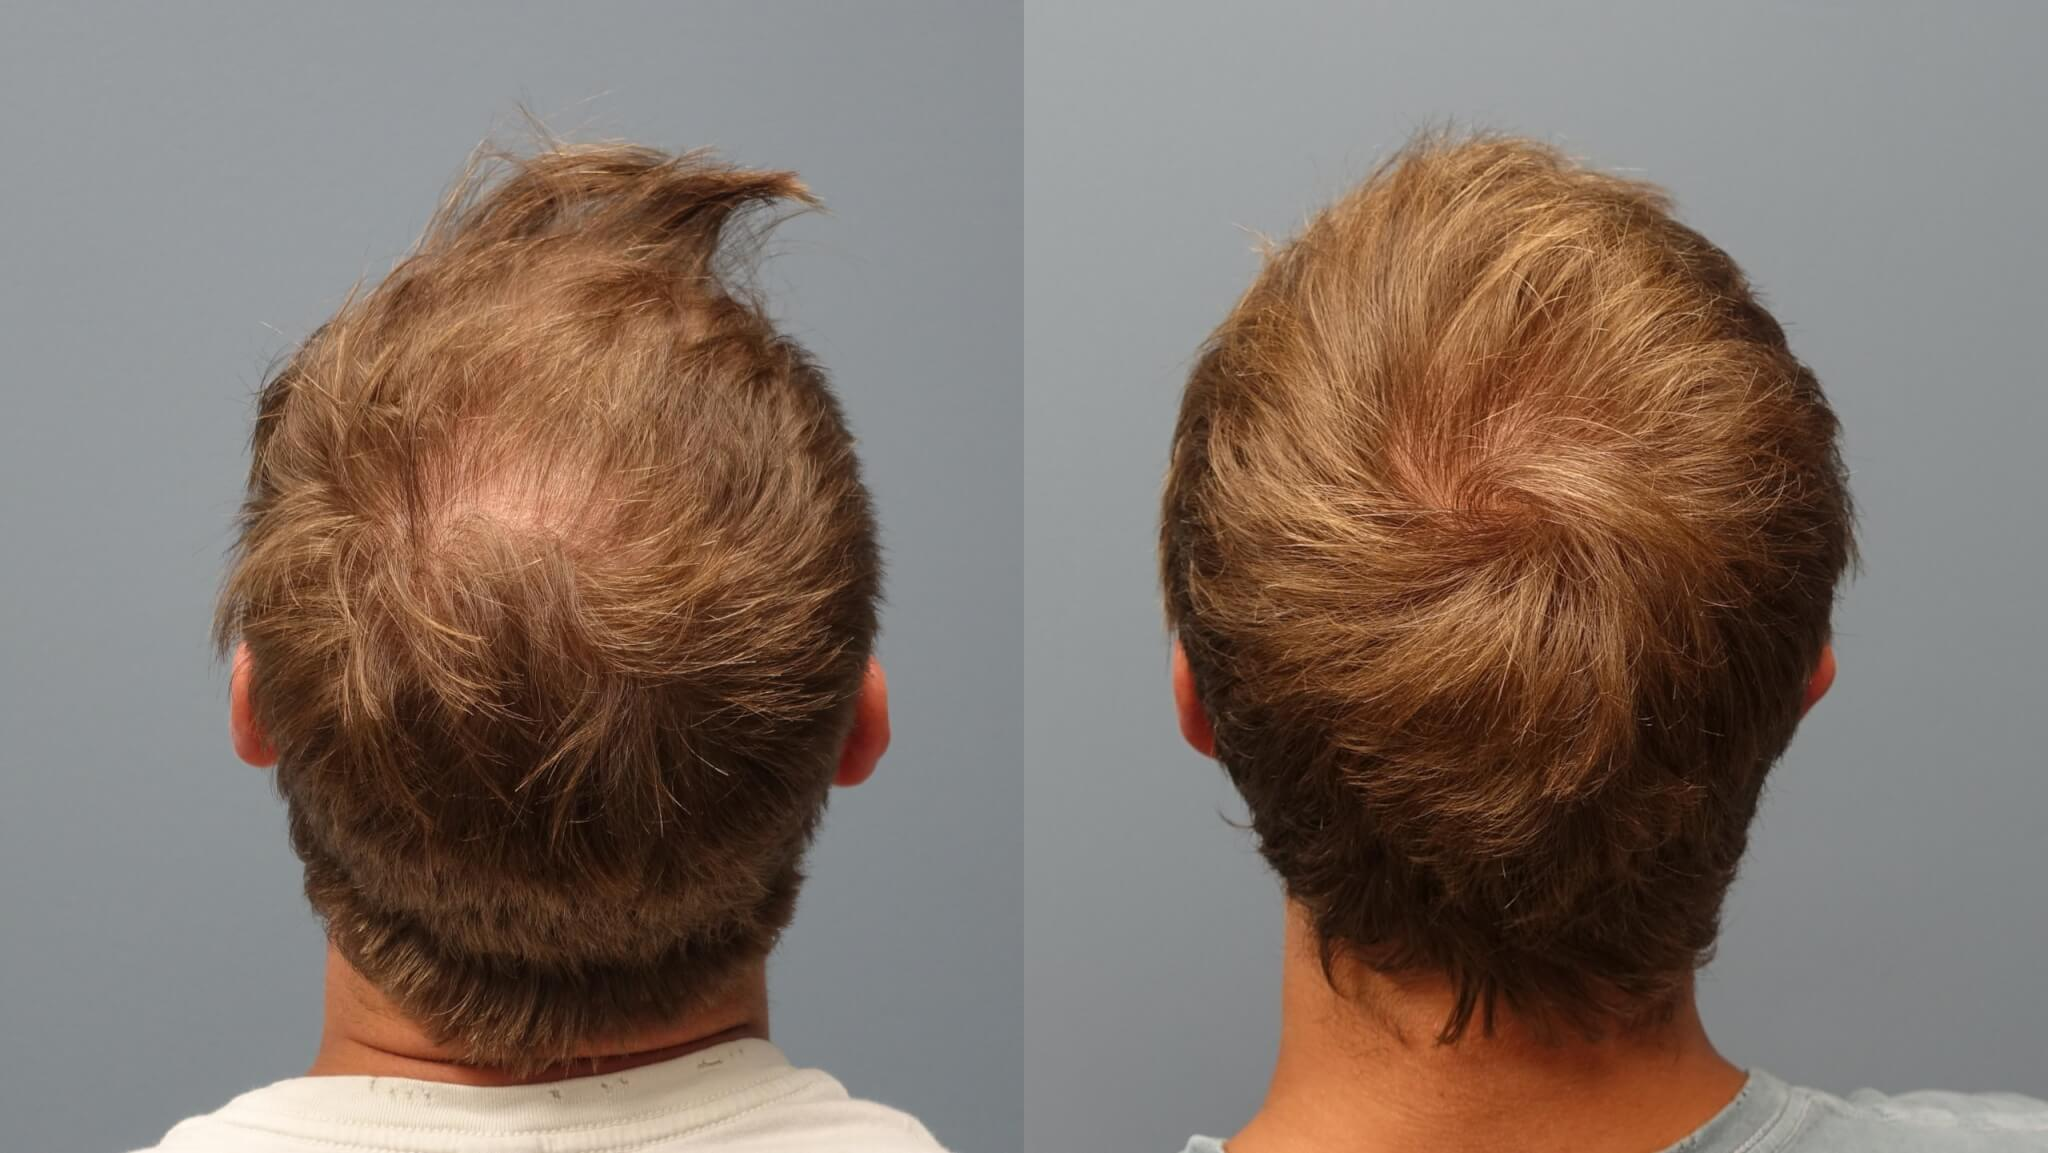 Before and after 1 year Neograft Hair Transplant 2500 Grafts